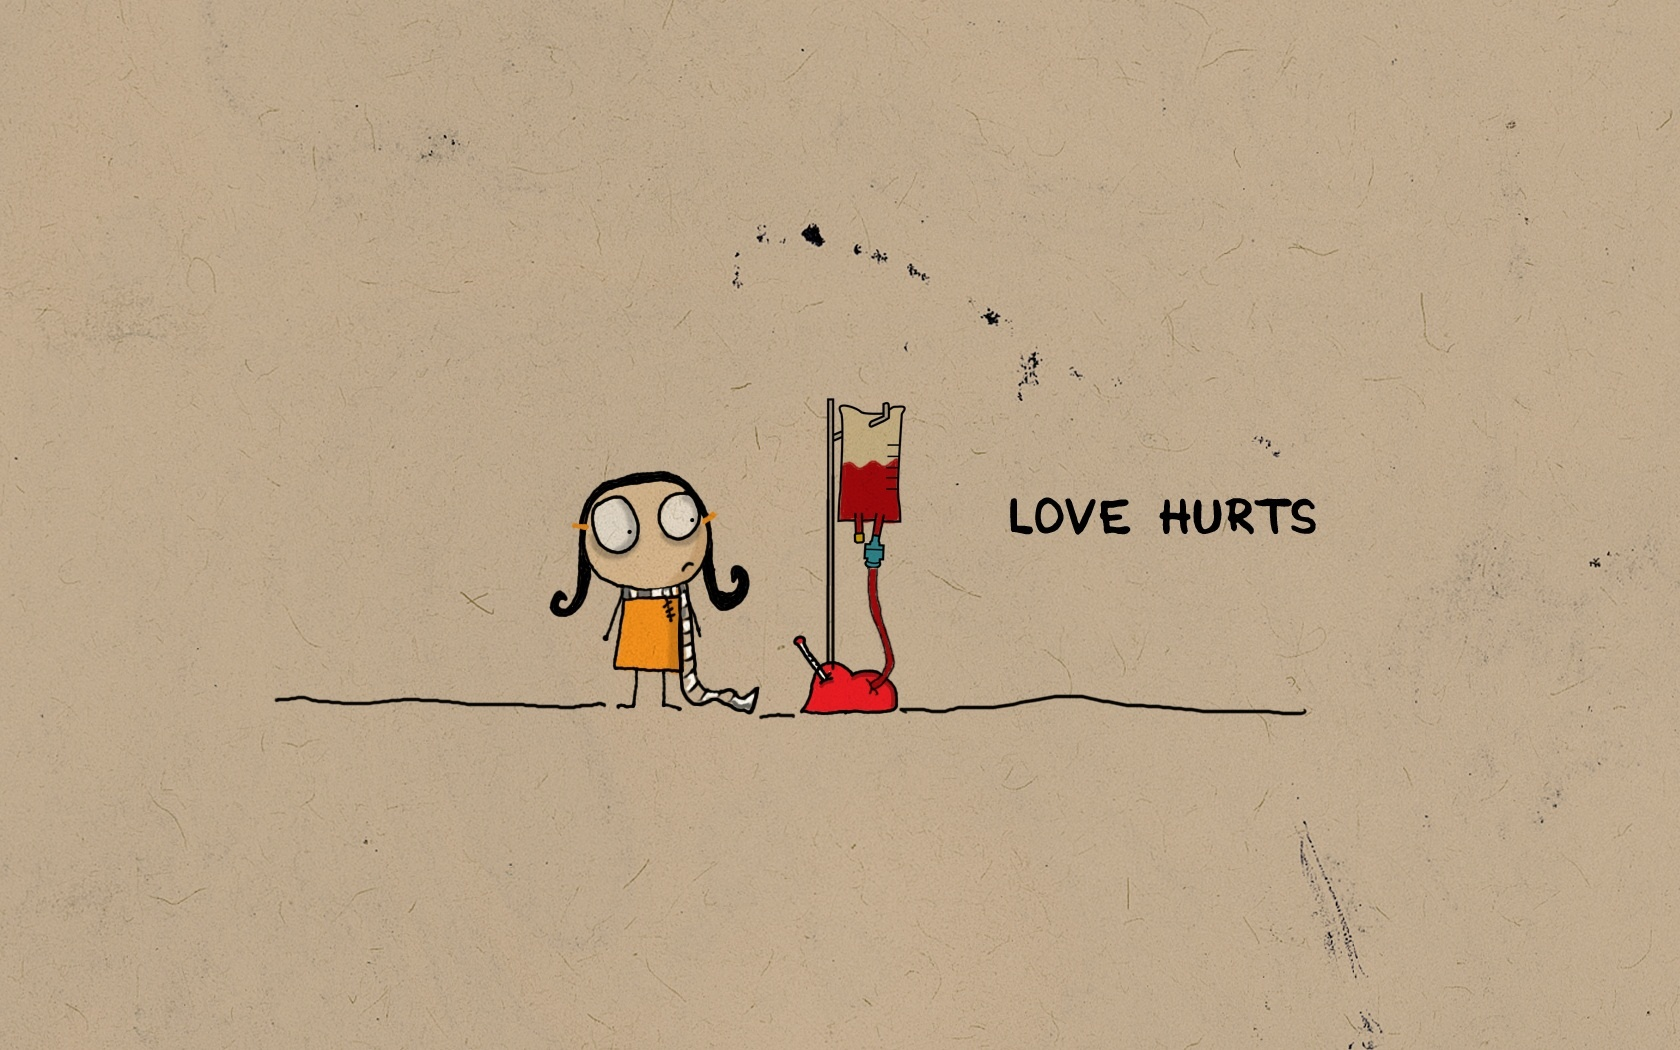 Love Hurt Wallpaper For Mobile : Love Hurts Quotes. QuotesGram